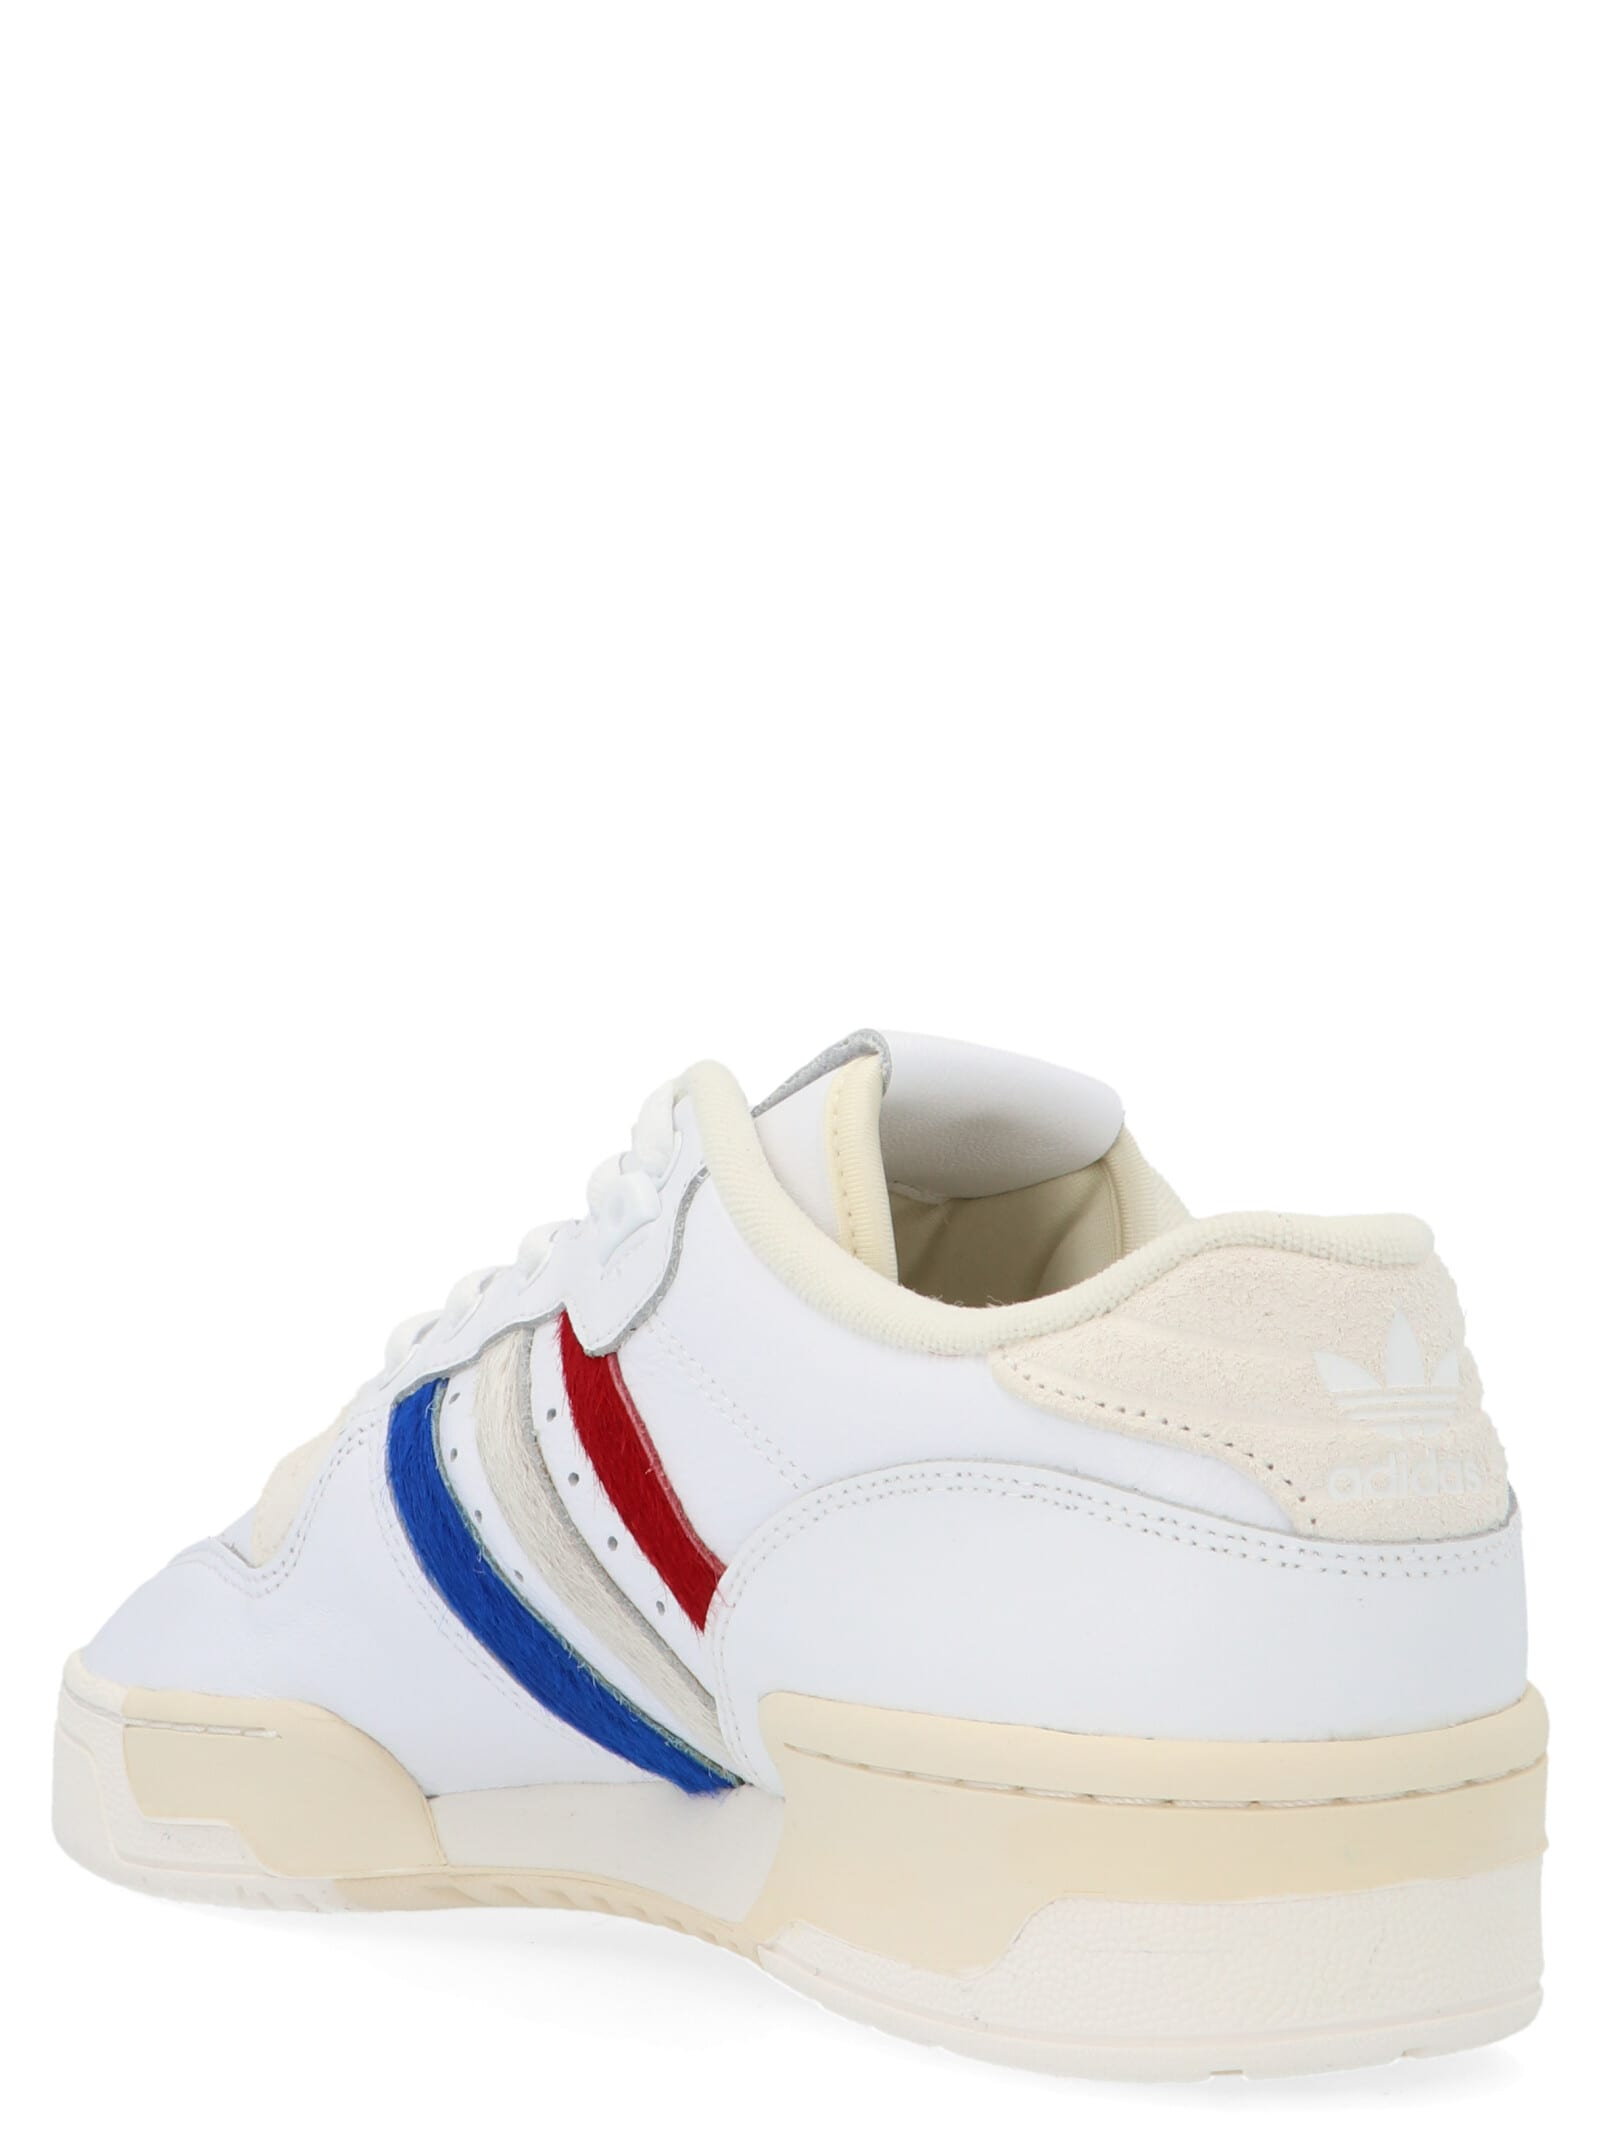 autumn shoes pick up discount sale Best price on the market at italist   Adidas Originals Adidas Originals  'rivalry Low' Shoes